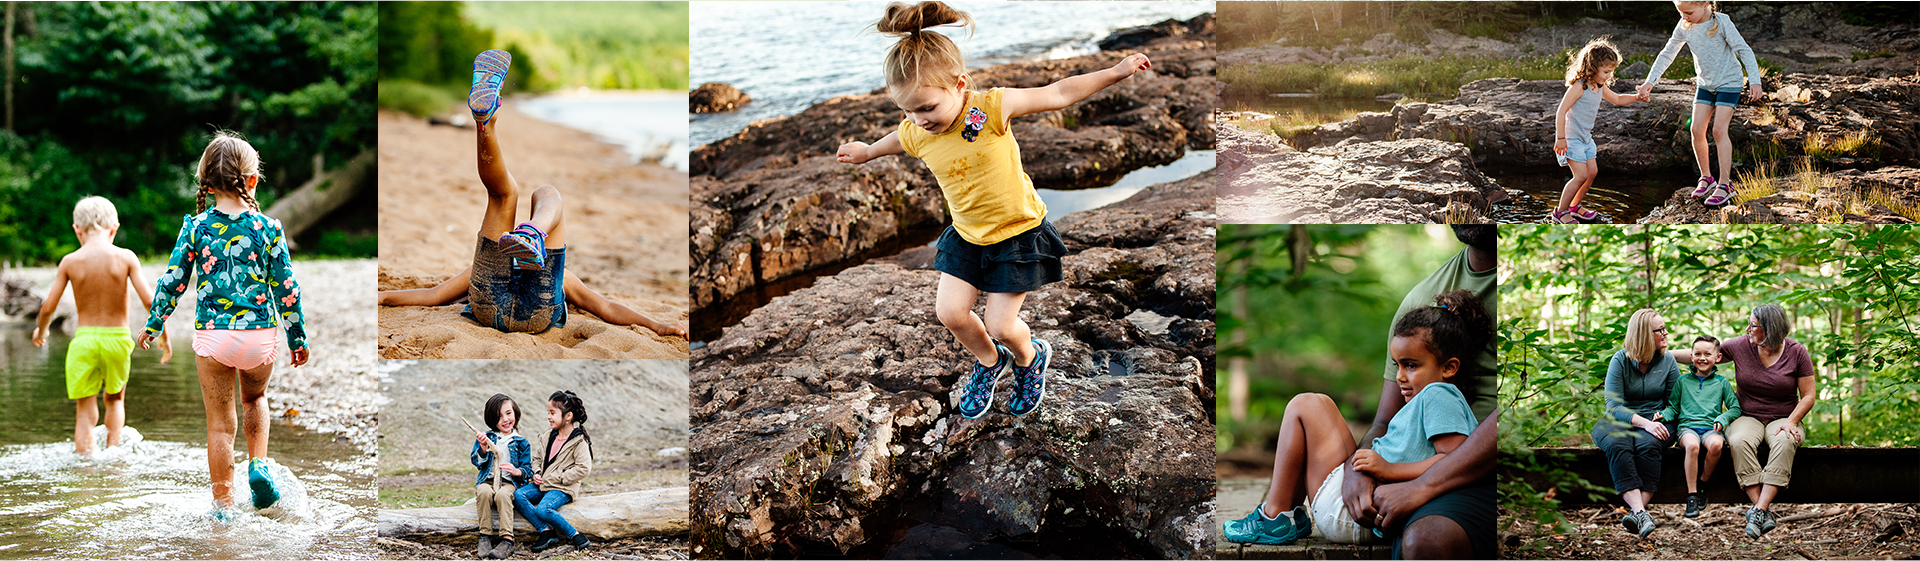 Collage of kids wearing merrell shoes while hiking in the woods.